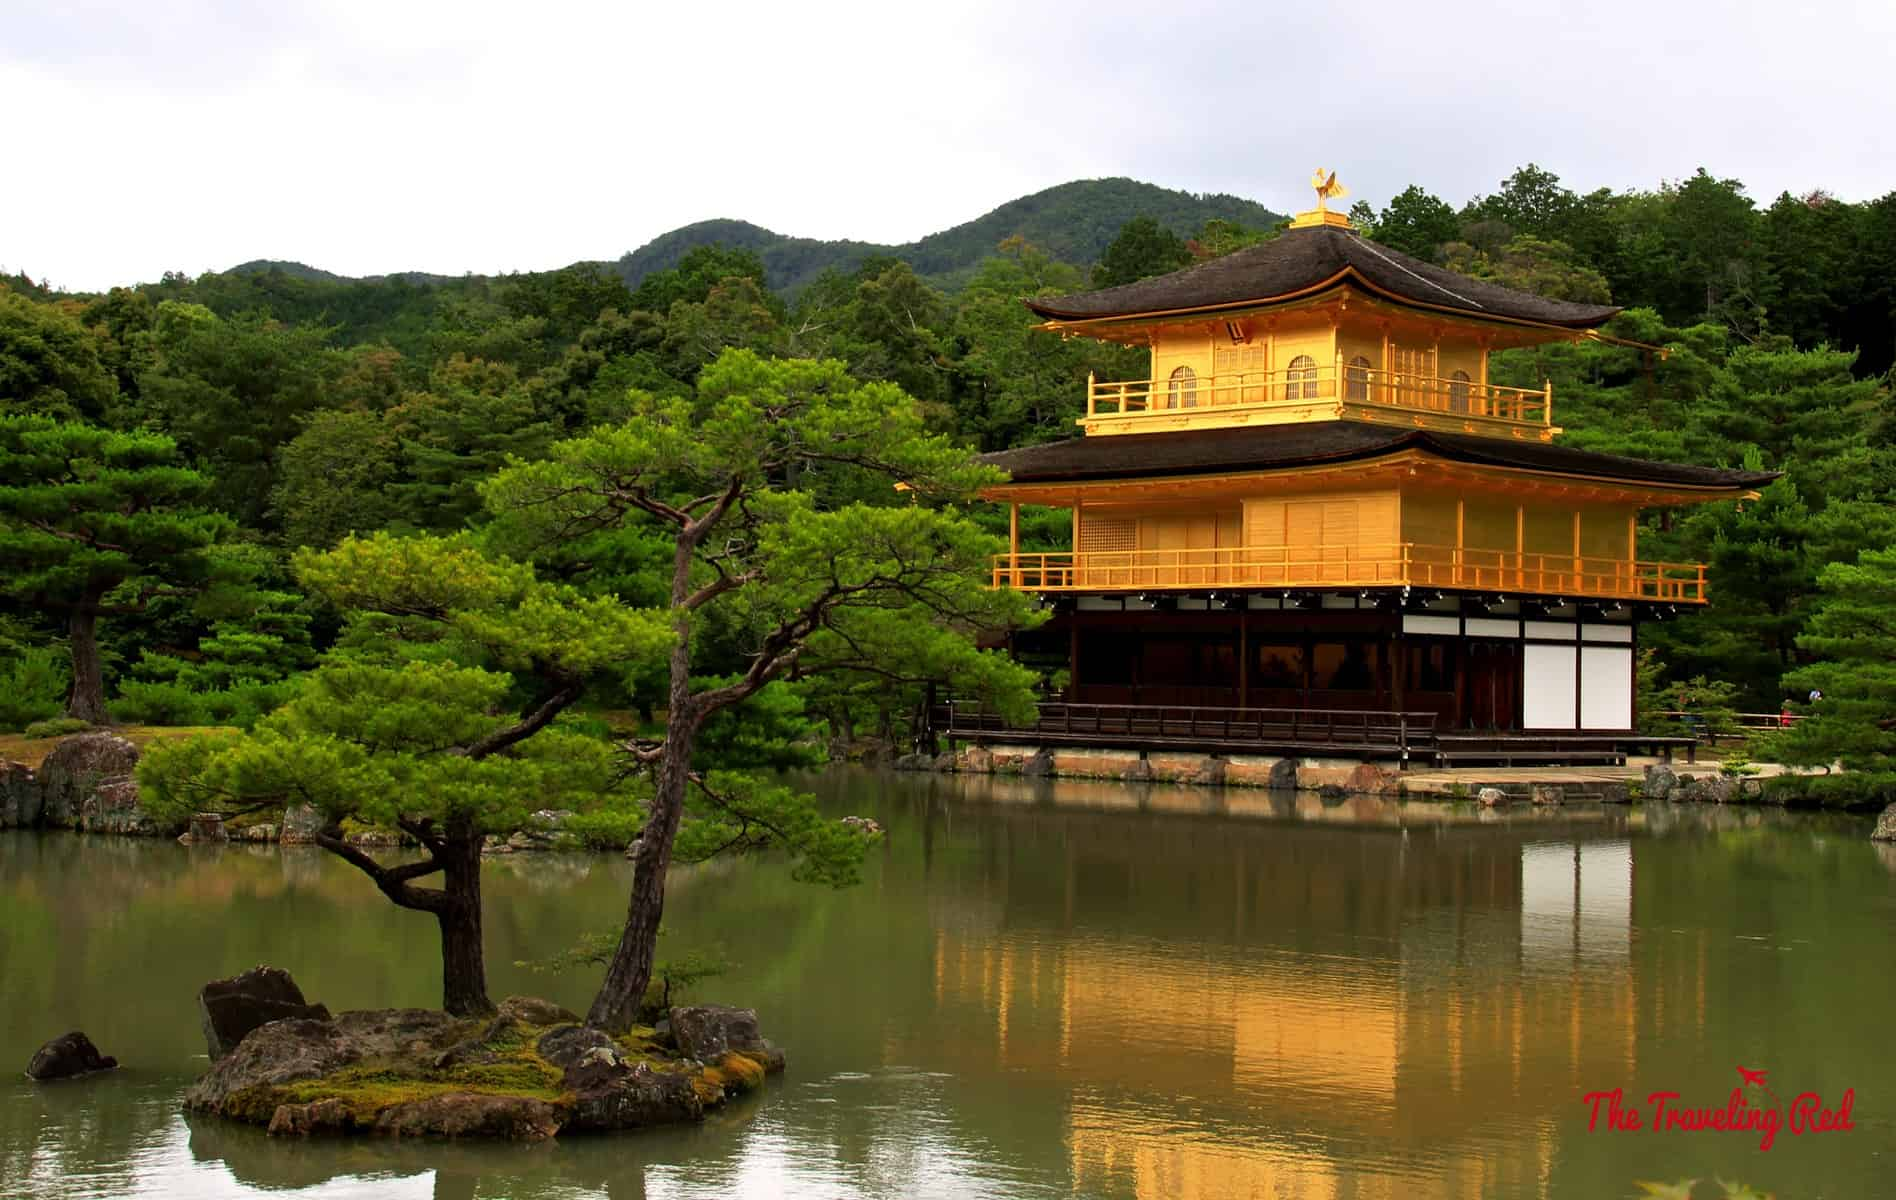 One of the most famous temples in Kyoto is Kinkaku-ju Temple (better known as the Golden Pavilion). This place was beautiful, but super crowded. I would suggest visiting right when it opens. It's an iconic temple in Japan.